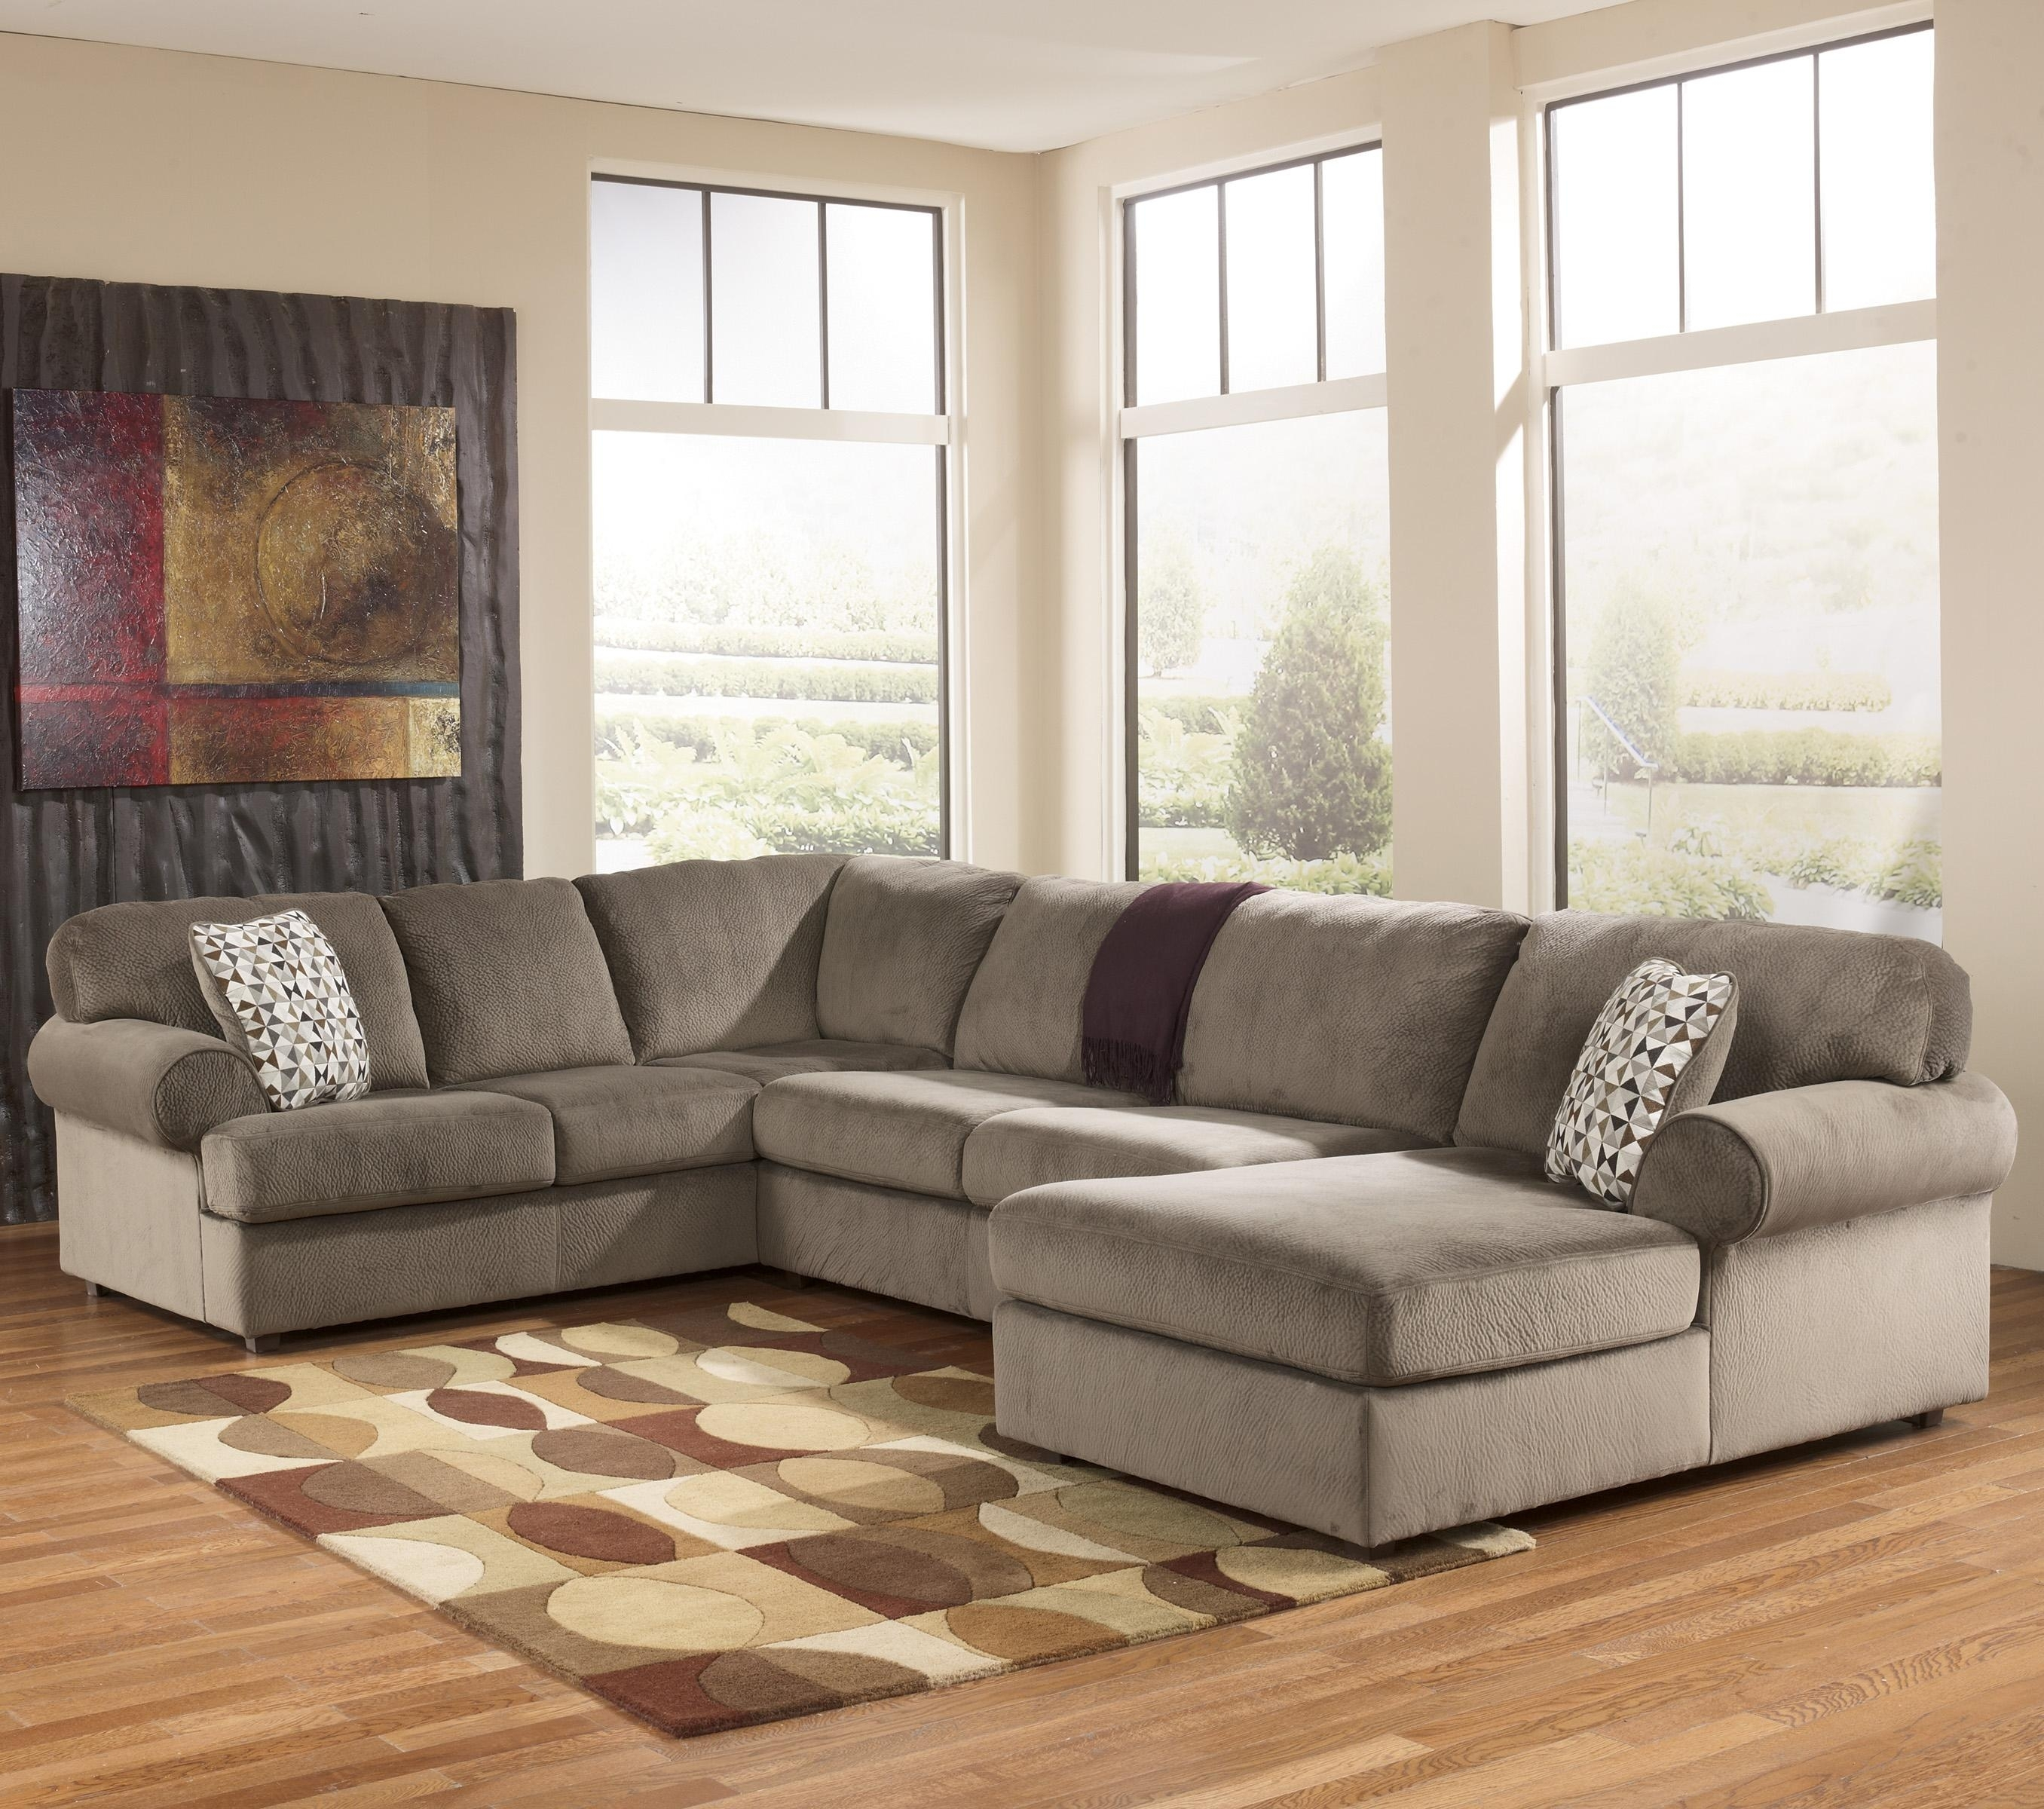 Signature Designashley Jessa Place - Dune Casual Sectional Sofa inside Norfolk Chocolate 3 Piece Sectionals With Raf Chaise (Image 26 of 30)